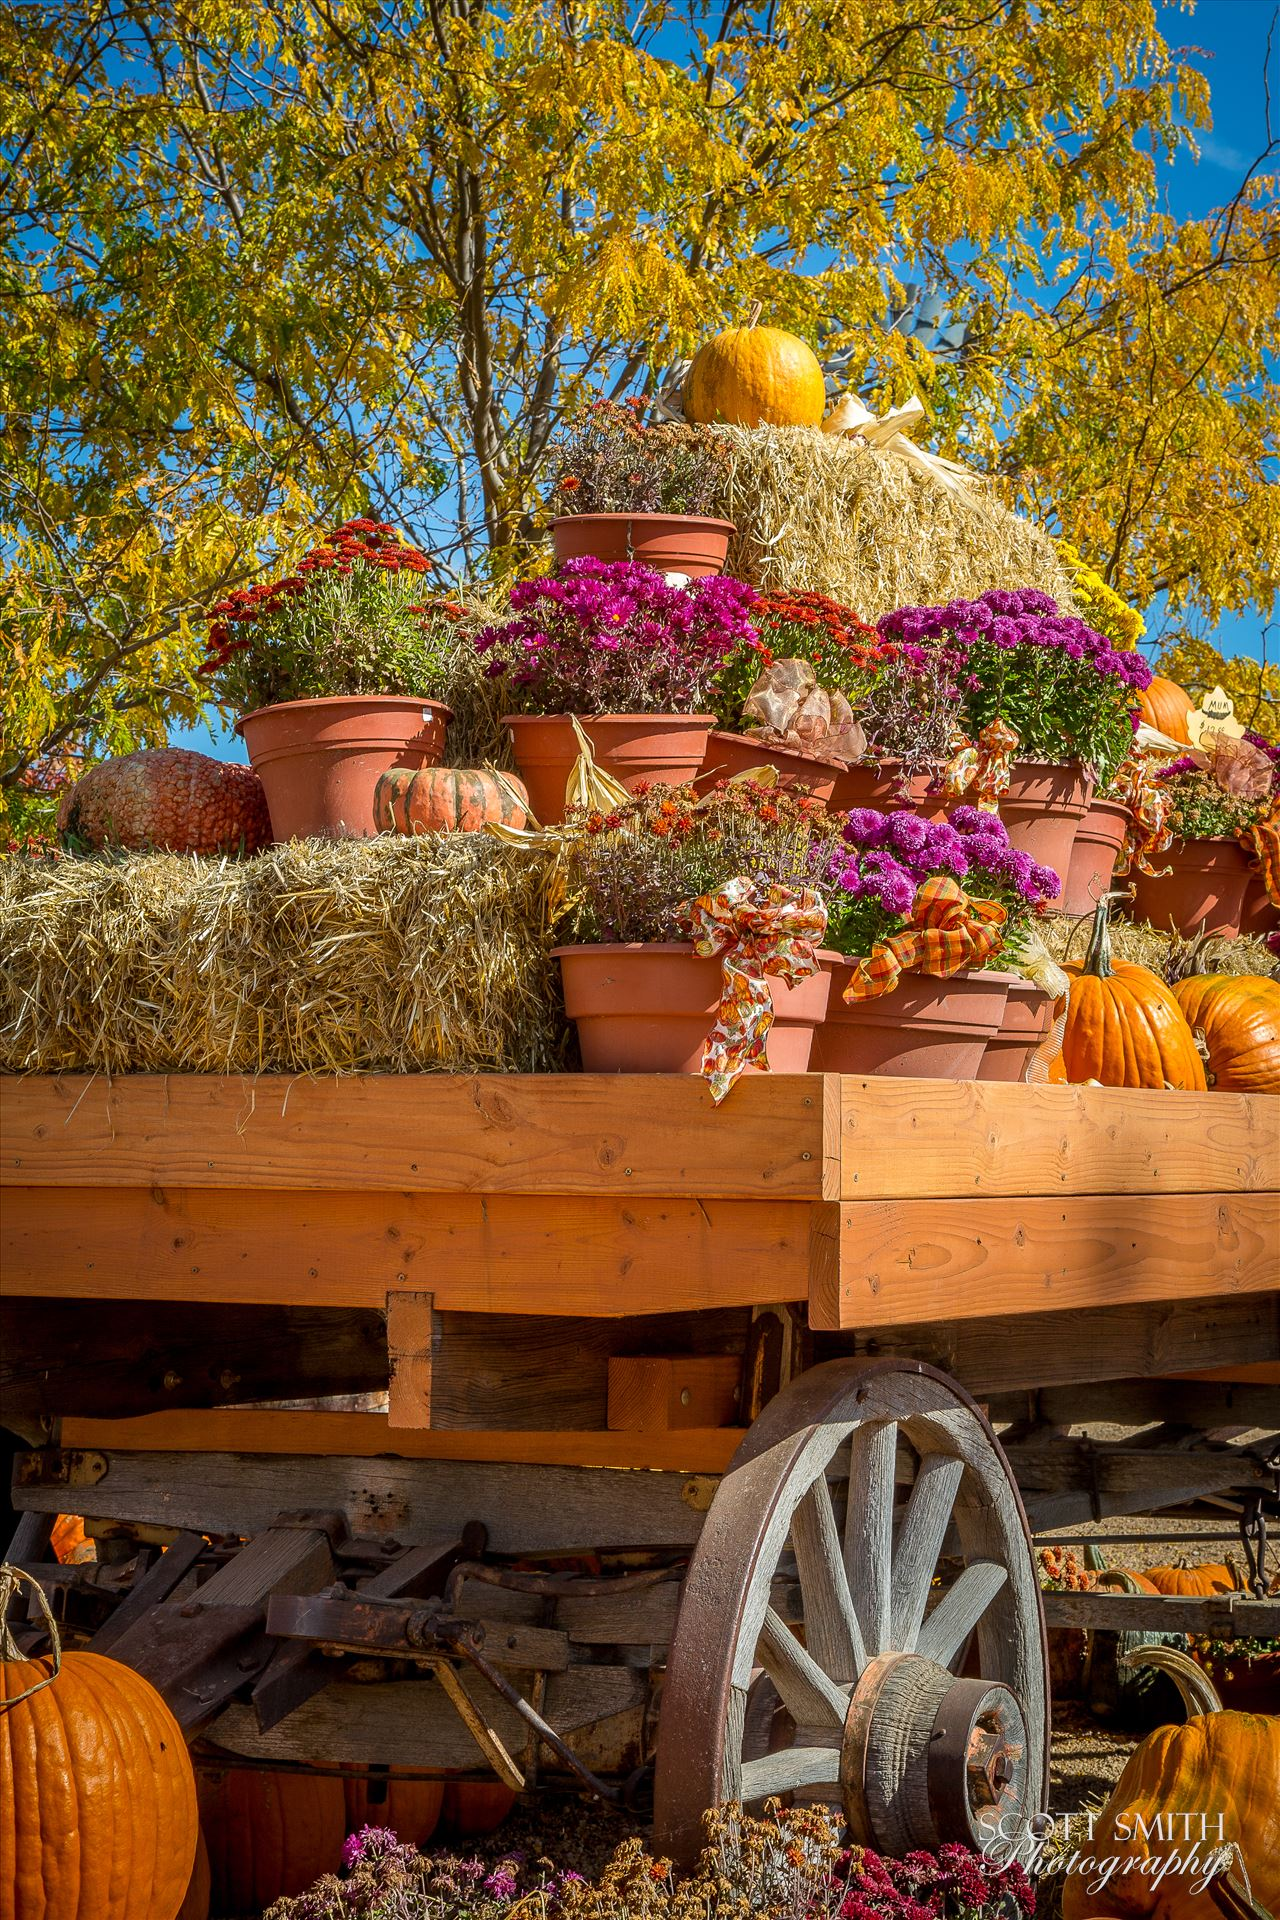 Bounty - A wagon full of fall flowers and pumpkins - from Anderson Farms, Erie Colorado. by D Scott Smith